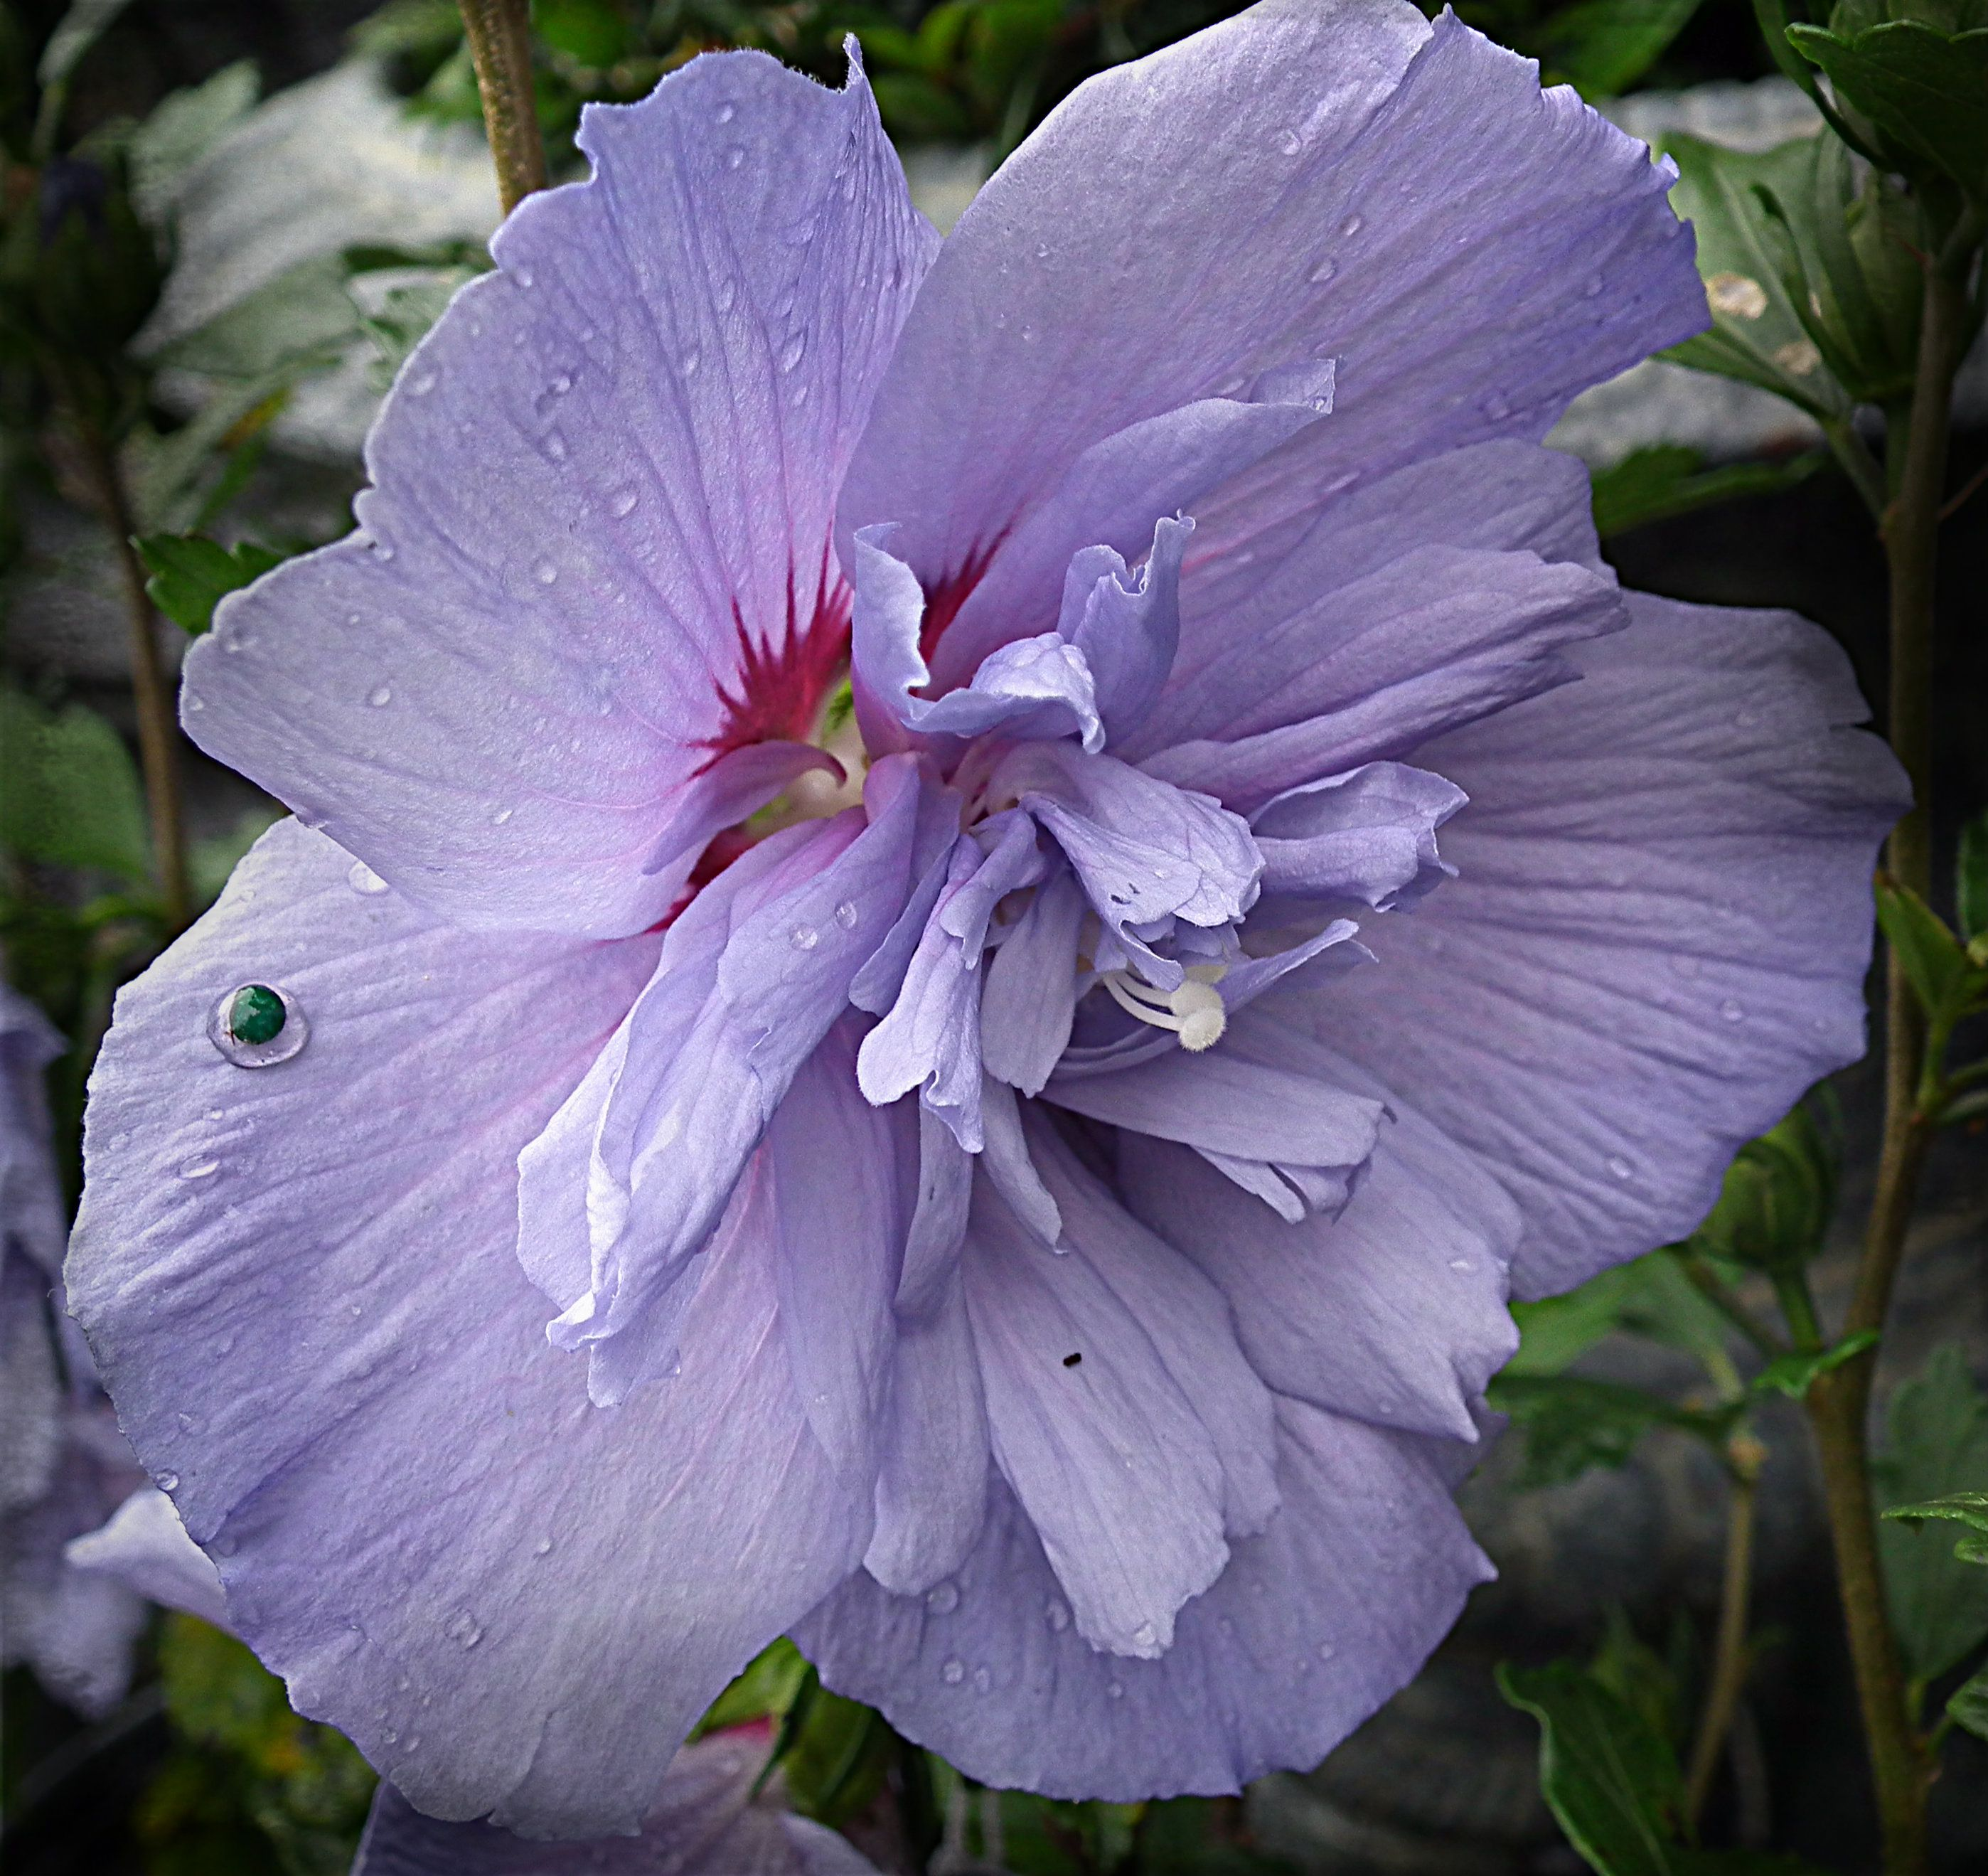 Rose Of Sharon Latin Name Althea Is A Tremendous Shrub To Incorporate Into A Perennial Garden Bed These Large Growing Growing Shrubs Plants Planting Herbs